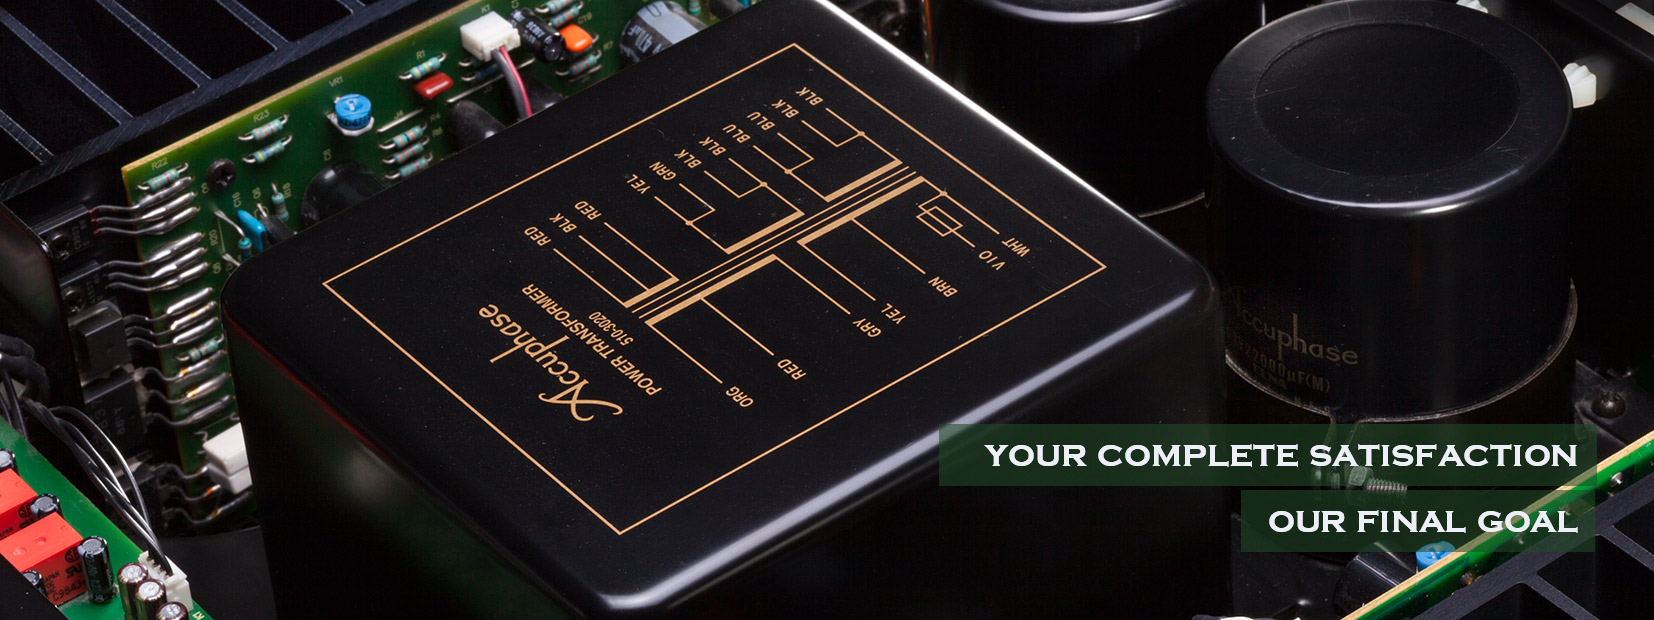 Printed Circuit Boardaluminum Pcbfpcpcb Assemblycircuito Impreso Board Design Pcb Assembly Manufacture Our Capacity 1